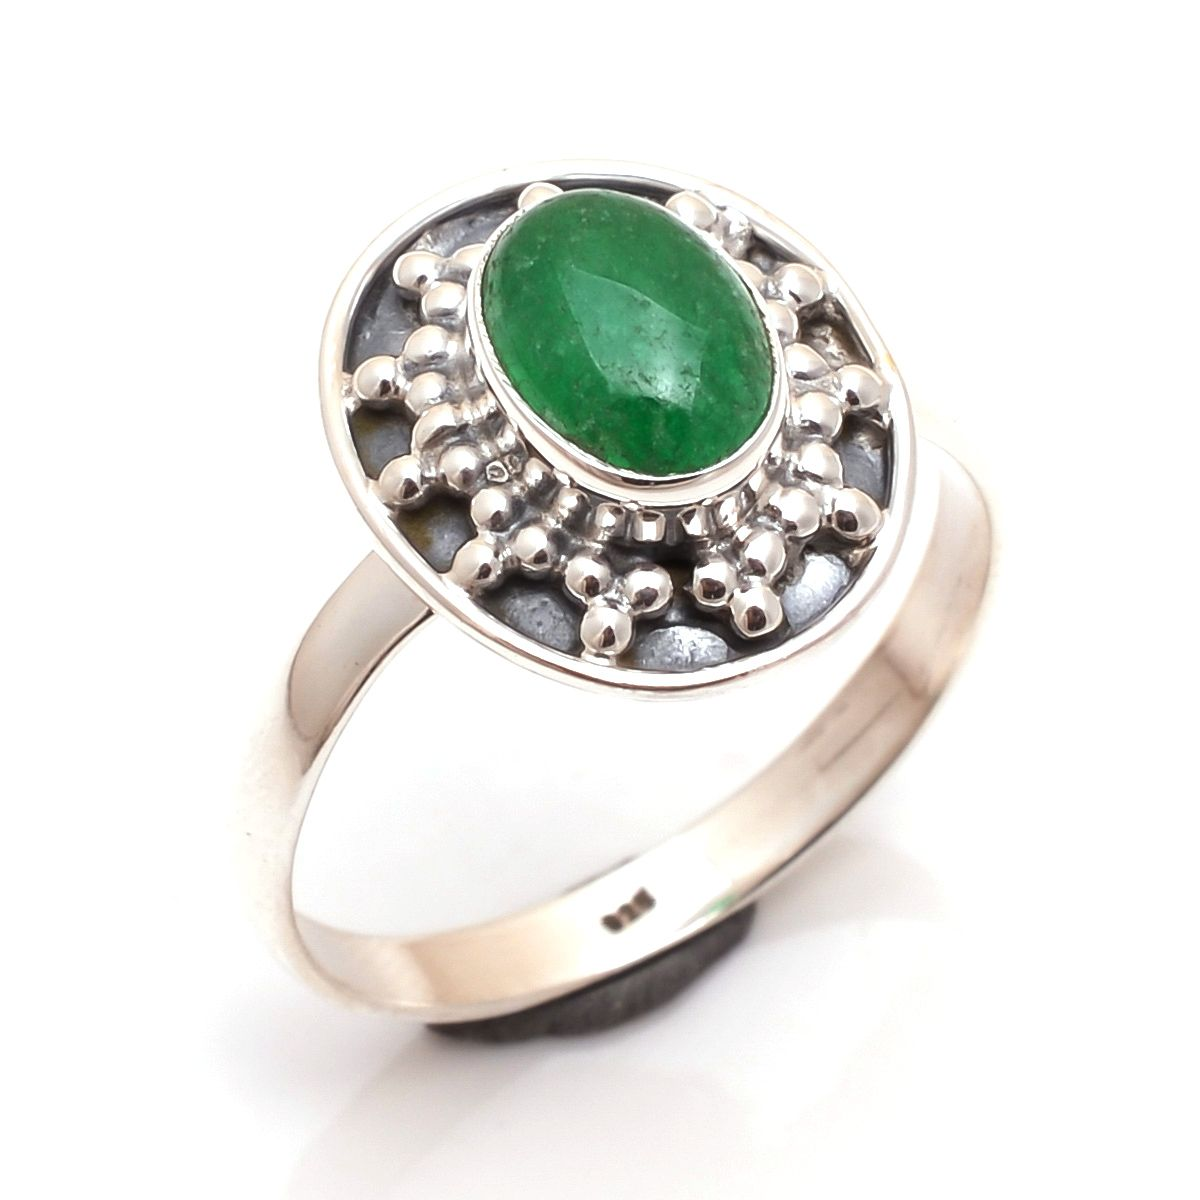 Green Onyx Gemstone 925 Sterling Silver Ring Size 9